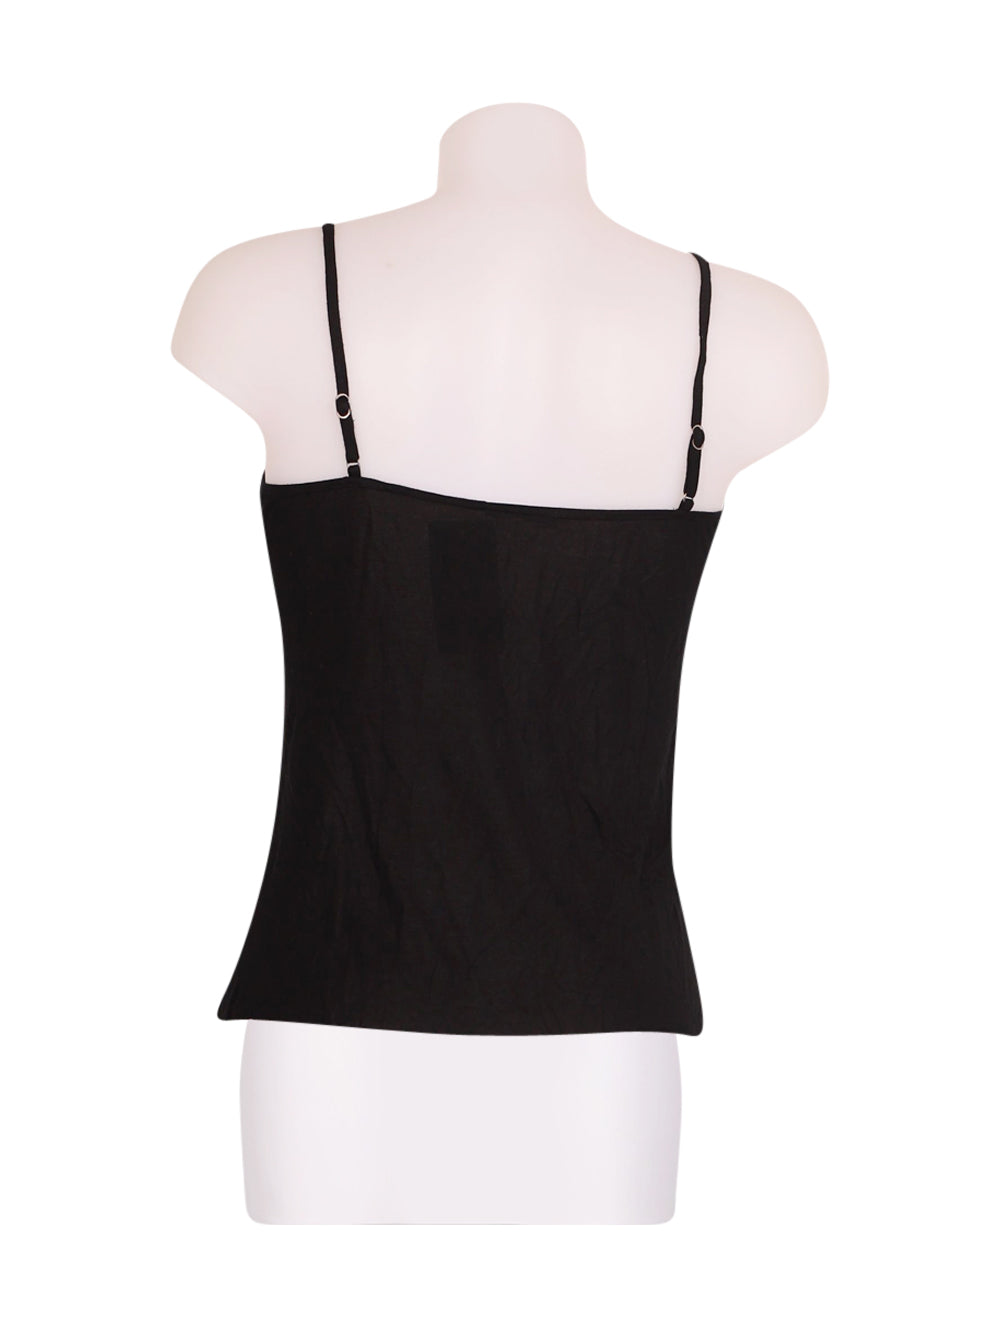 Back photo of Preloved Sisley Black Woman's sleeveless top - size 8/S